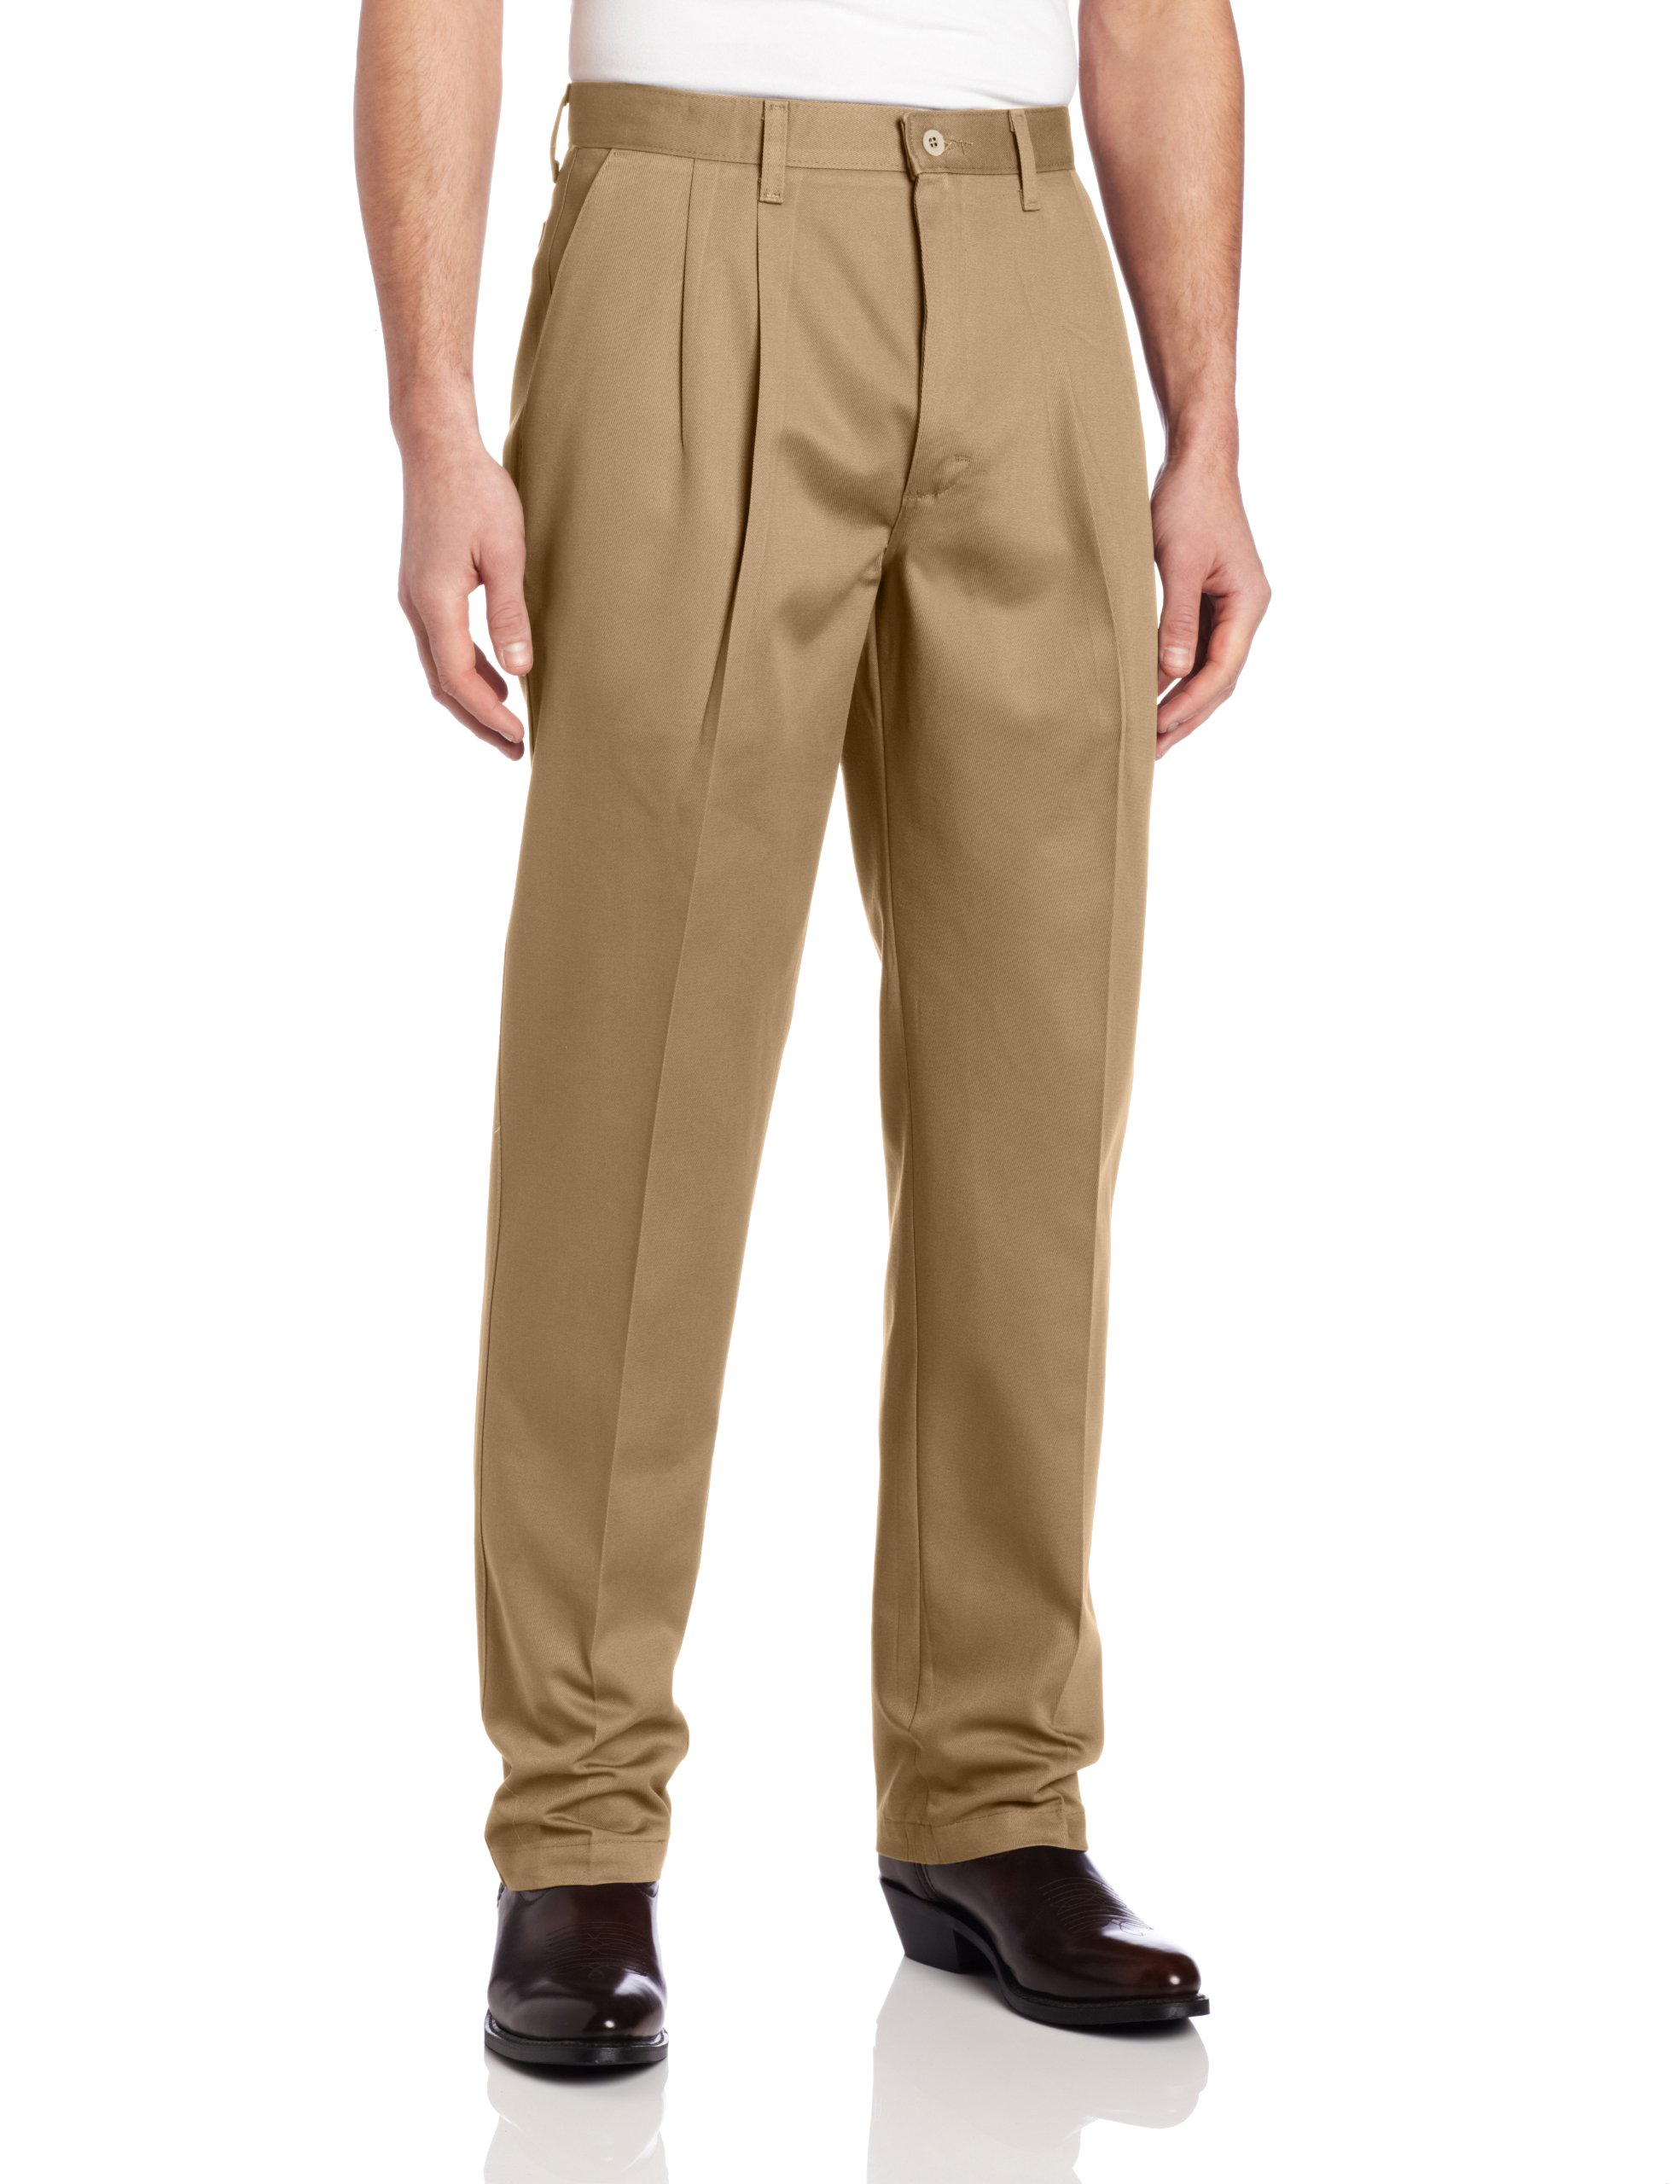 Wrangler Men's Riata Pleated Relaxed Fit Casual Pant, Goldenrod, 35x36